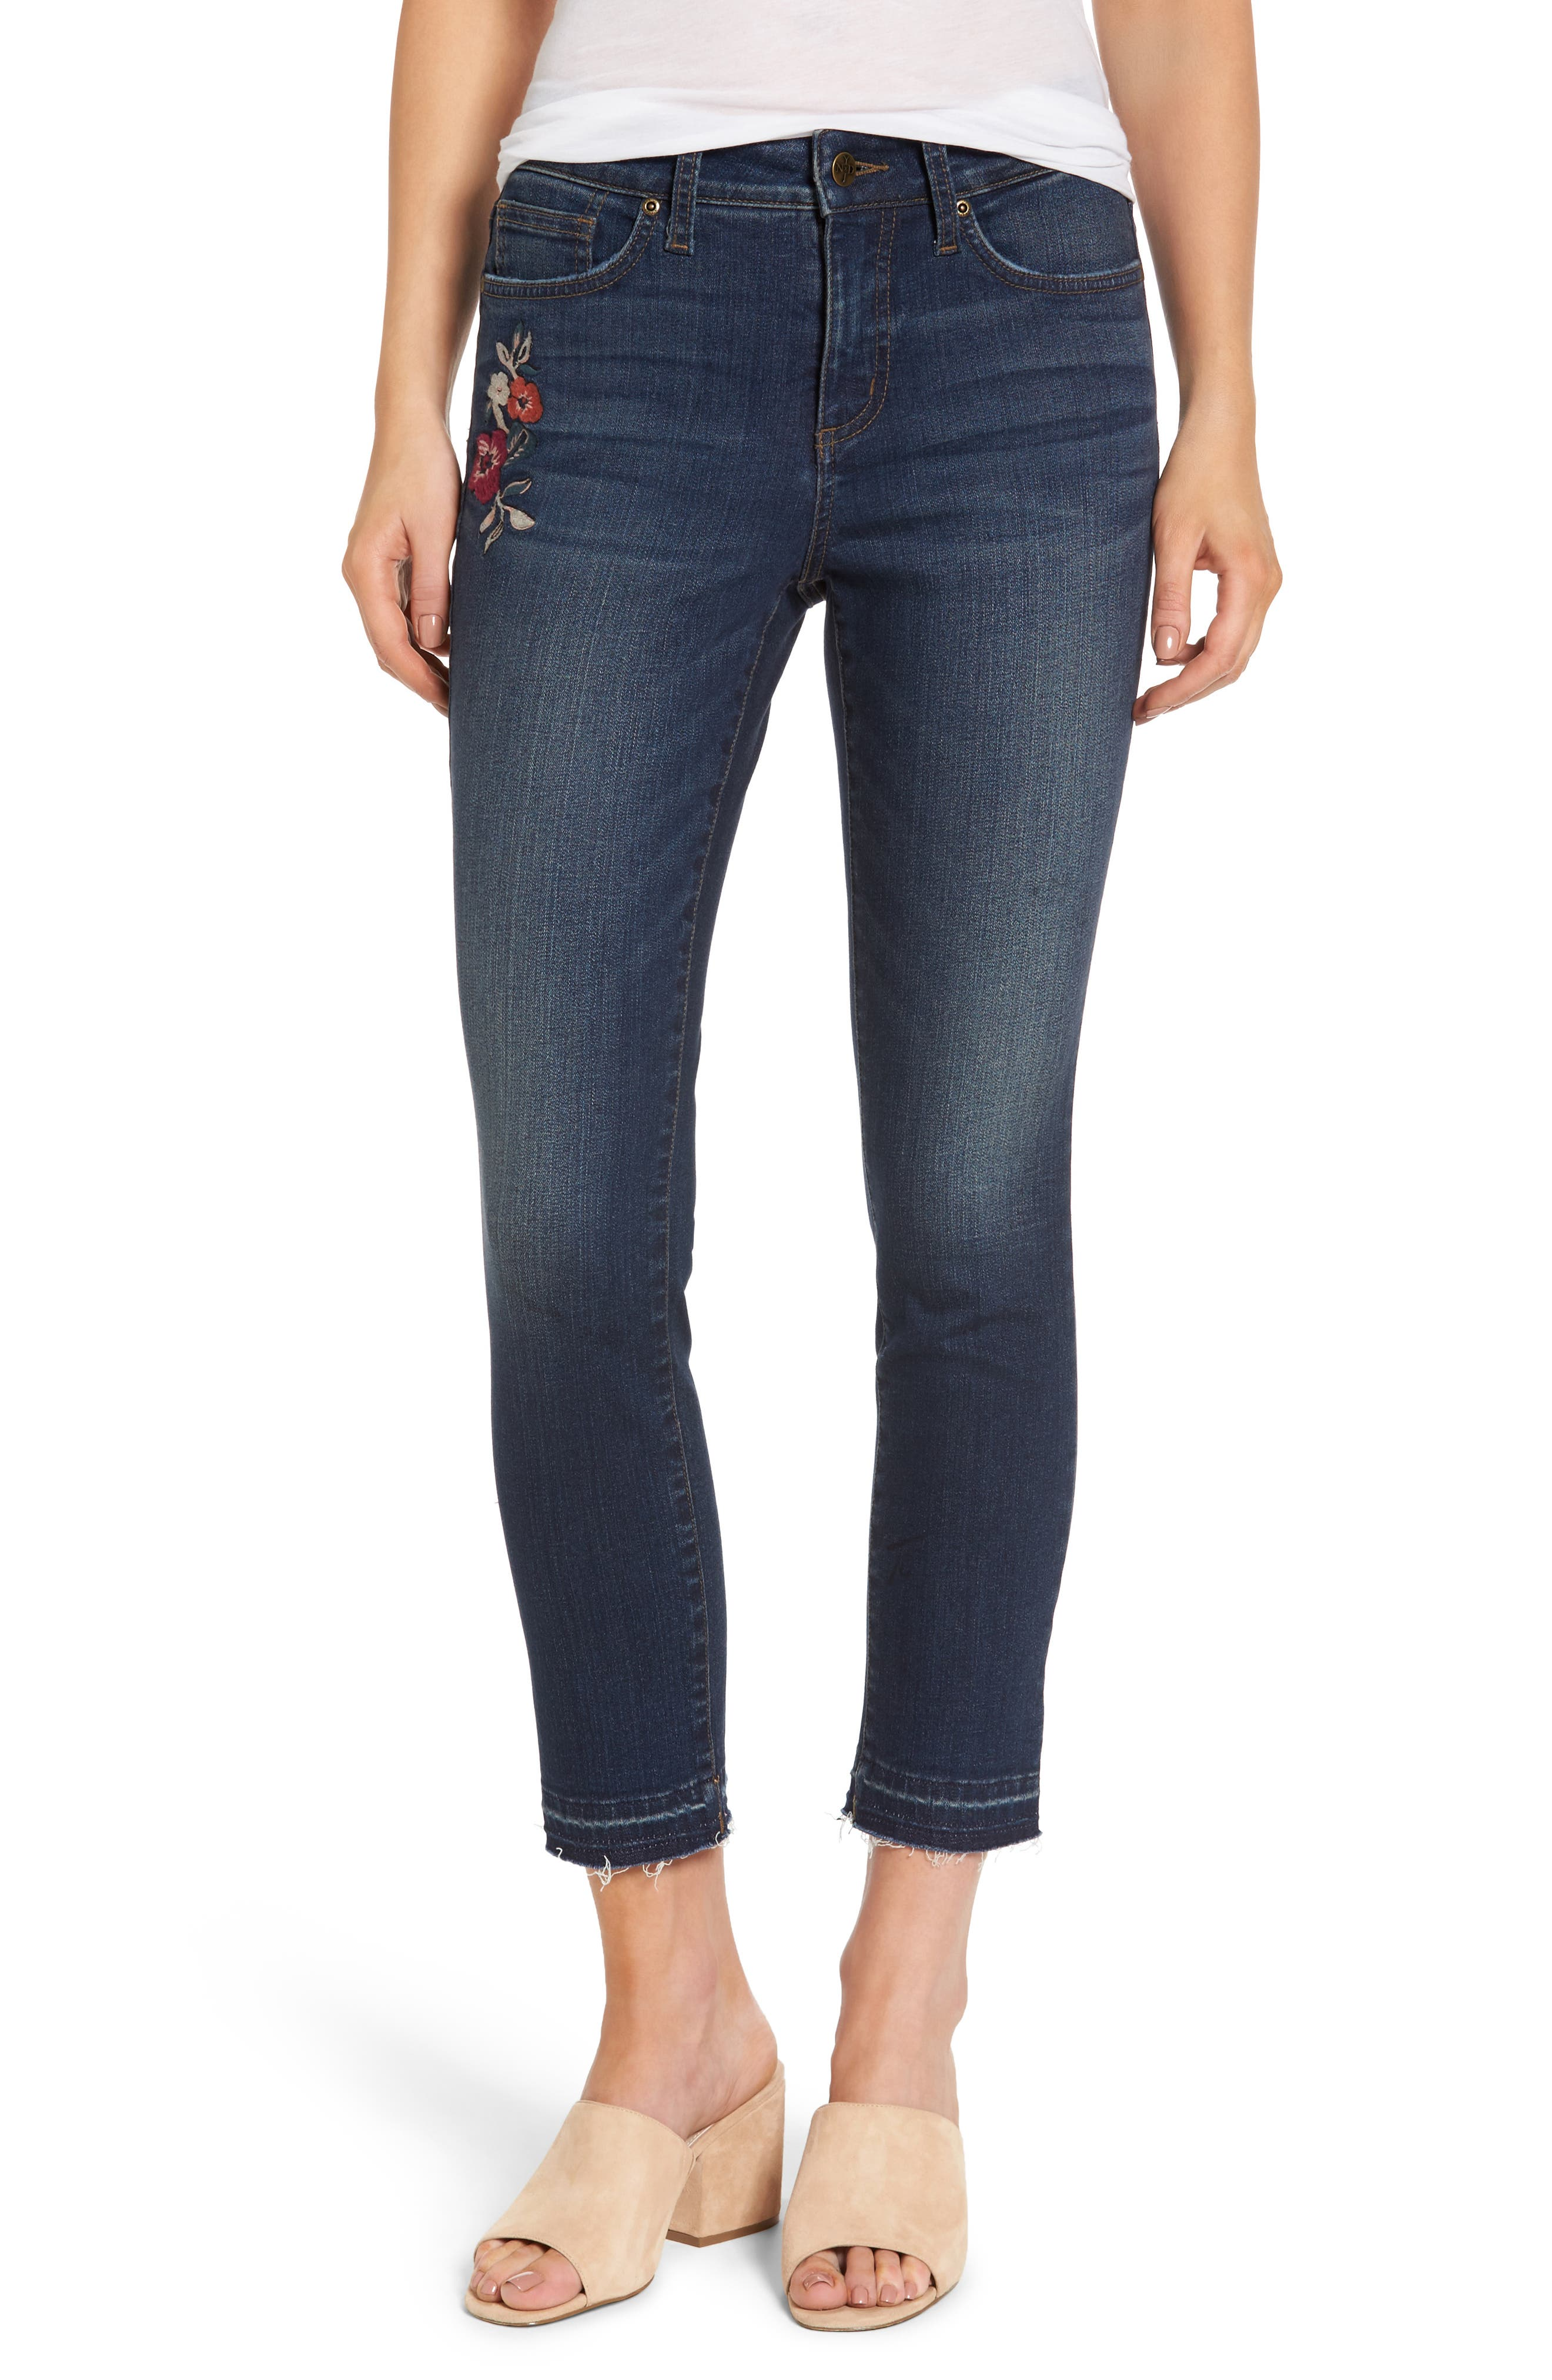 NYDJ Alina Embroidered Stretch Skinny Ankle Jeans